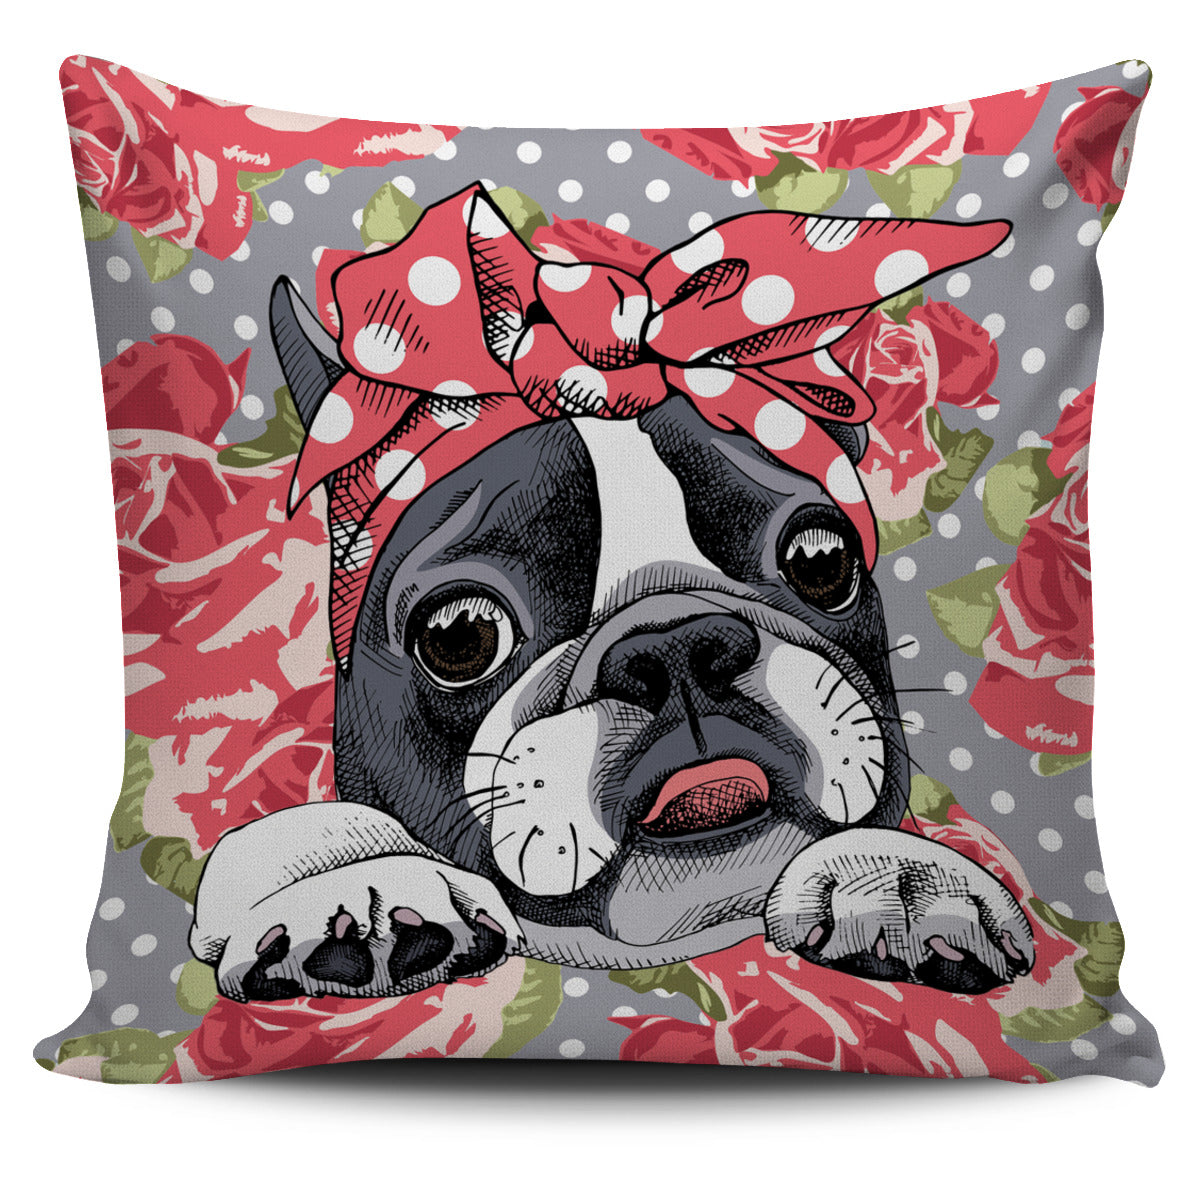 Floral Boston Terrier Pillow Cover – Groove Bags